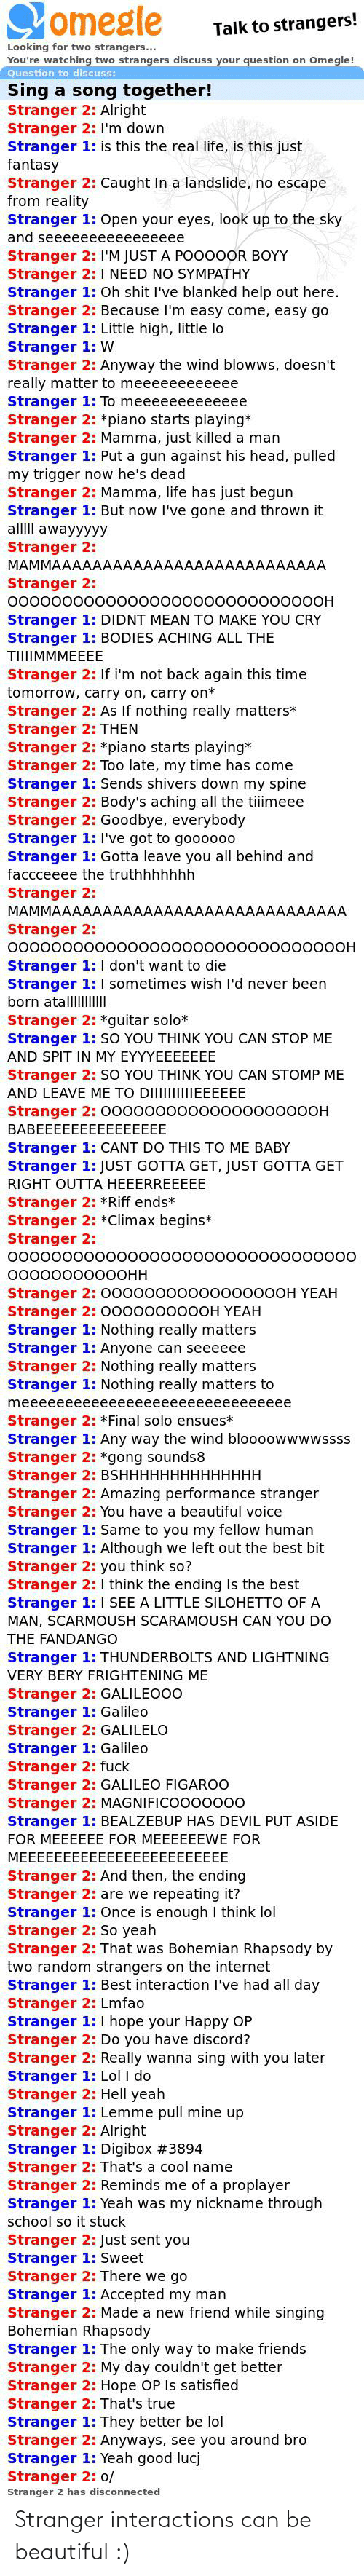 gong: omegle  Talk to strangers!  Looking for two strangers...  You're watching two strangers discuss your question on Omegle!  Question to discuss:  Sing a song together!  Stranger 2: Alright  Stranger 2: I'm down  Stranger 1: is this the real life, is this just  fantasy  Stranger 2: Caught In a landslide, no escape  from reality  Stranger 1: Open your eyes, look up to the sky  and seeeeeeeeeeeeeeee  Stranger 2: I'M JUST A PO000OR BOYY  Stranger 2: I NEED NO SYMPATHY  Stranger 1: Oh shit I've blanked help out here.  Stranger 2: Because I'm easy come, easy go  Stranger 1: Little high, little lo  Stranger 1: W  Stranger 2: Anyway the wind blowws, doesn't  really matter to meeeeeeeeeeee  Stranger 1: To meeeeeeeeeeeee  Stranger 2: *piano starts playing*  Stranger 2: Mamma, just killed a man  Stranger 1: Put a gun against his head, pulled  my trigger now he's dead  Stranger 2: Mamma, life has just begun  Stranger 1: But now I've gone and thrown it  alllII awayyyyy  Stranger 2:  MAMMAAAAAAAAAAAAAAAAAAAAAAAAAAA  Stranger 2:  0000000000000000000000000000OH  Stranger 1: DIDNT MEAN TO MAKE YOU CRY  Stranger 1: BODIES ACHING ALL THE  TIIIIMMMEEEE  Stranger 2: If i'm not back again this time  tomorrow, carry on, carry on*  Stranger 2: AS If nothing really matters*  Stranger 2: THEN  Stranger 2: *piano starts playing*  Stranger 2: Too late, my time has come  Stranger 1: Sends shivers down my spine  Stranger 2: Body's aching all the tiiimeee  Stranger 2: Goodbye, everybody  Stranger 1: Il've got to gooo00  Stranger 1: Gotta leave you all behind and  faccceeee the truthhhhhhh  Stranger 2:  MAMMAAAAAAAAAAAAAAAAAAAAAAAAAAAAA  Stranger 2:  ОООООООО0ООО000000ОООООО0000ОООН  Stranger 1: I don't want to die  Stranger 1: I sometimes wish l'd never been  born atalllIII  Stranger 2: *guitar solo*  Stranger 1: SO YOU THINK YOU CAN STOP ME  AND SPIT IN MY EYYYEEEEEEE  Stranger 2: SO YOU THINK YOU CAN STOMP ME  AND LEAVE ME TO DIIIIIIIIIEEEEEE  Stranger 2: 000000000000000000OOH  BABEEEEEEEEE